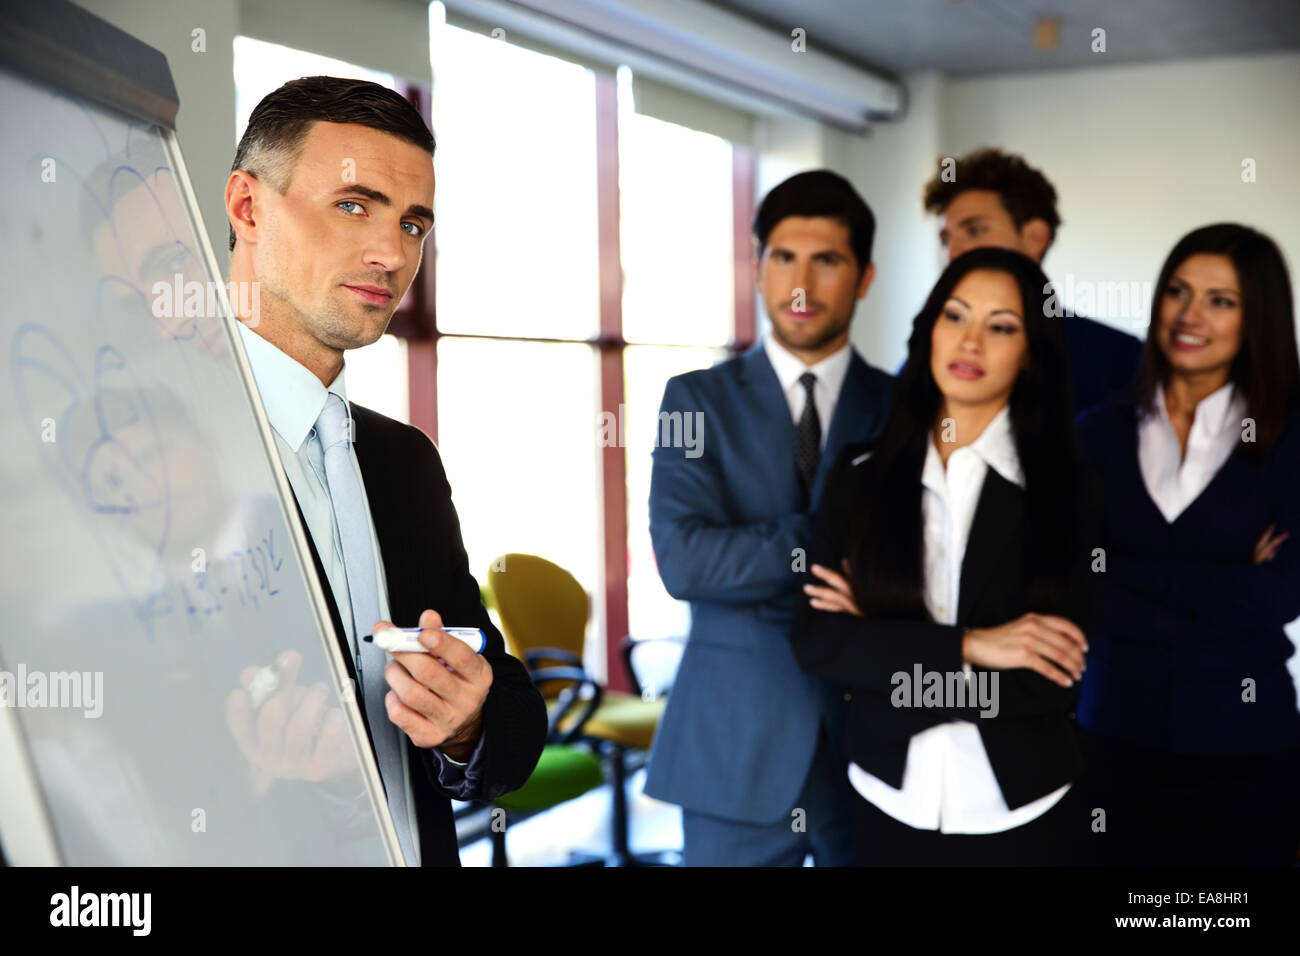 Businessman explaining something on the flipboard to his colleagues - Stock Image